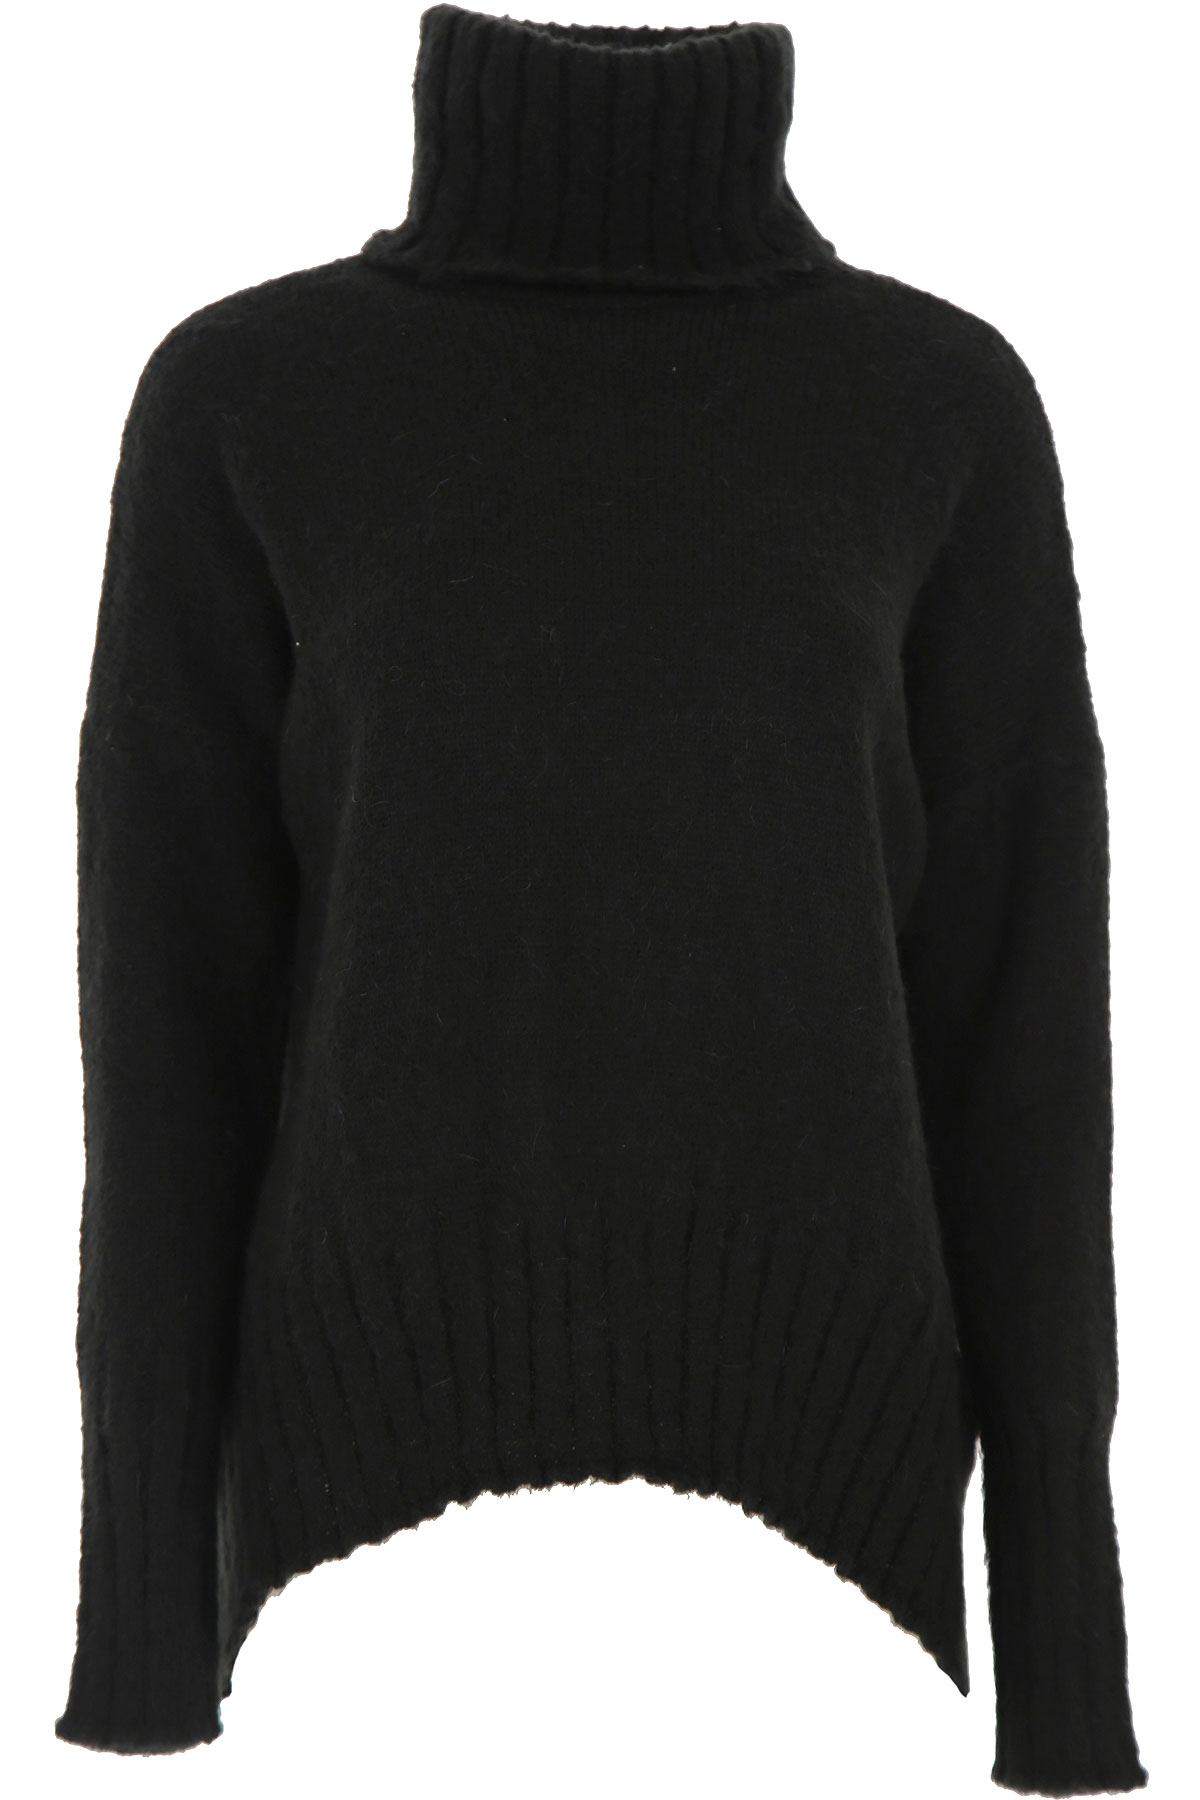 ALYSI Sweater for Women Jumper On Sale, Black, Acrylic, 2019, 2 4 6